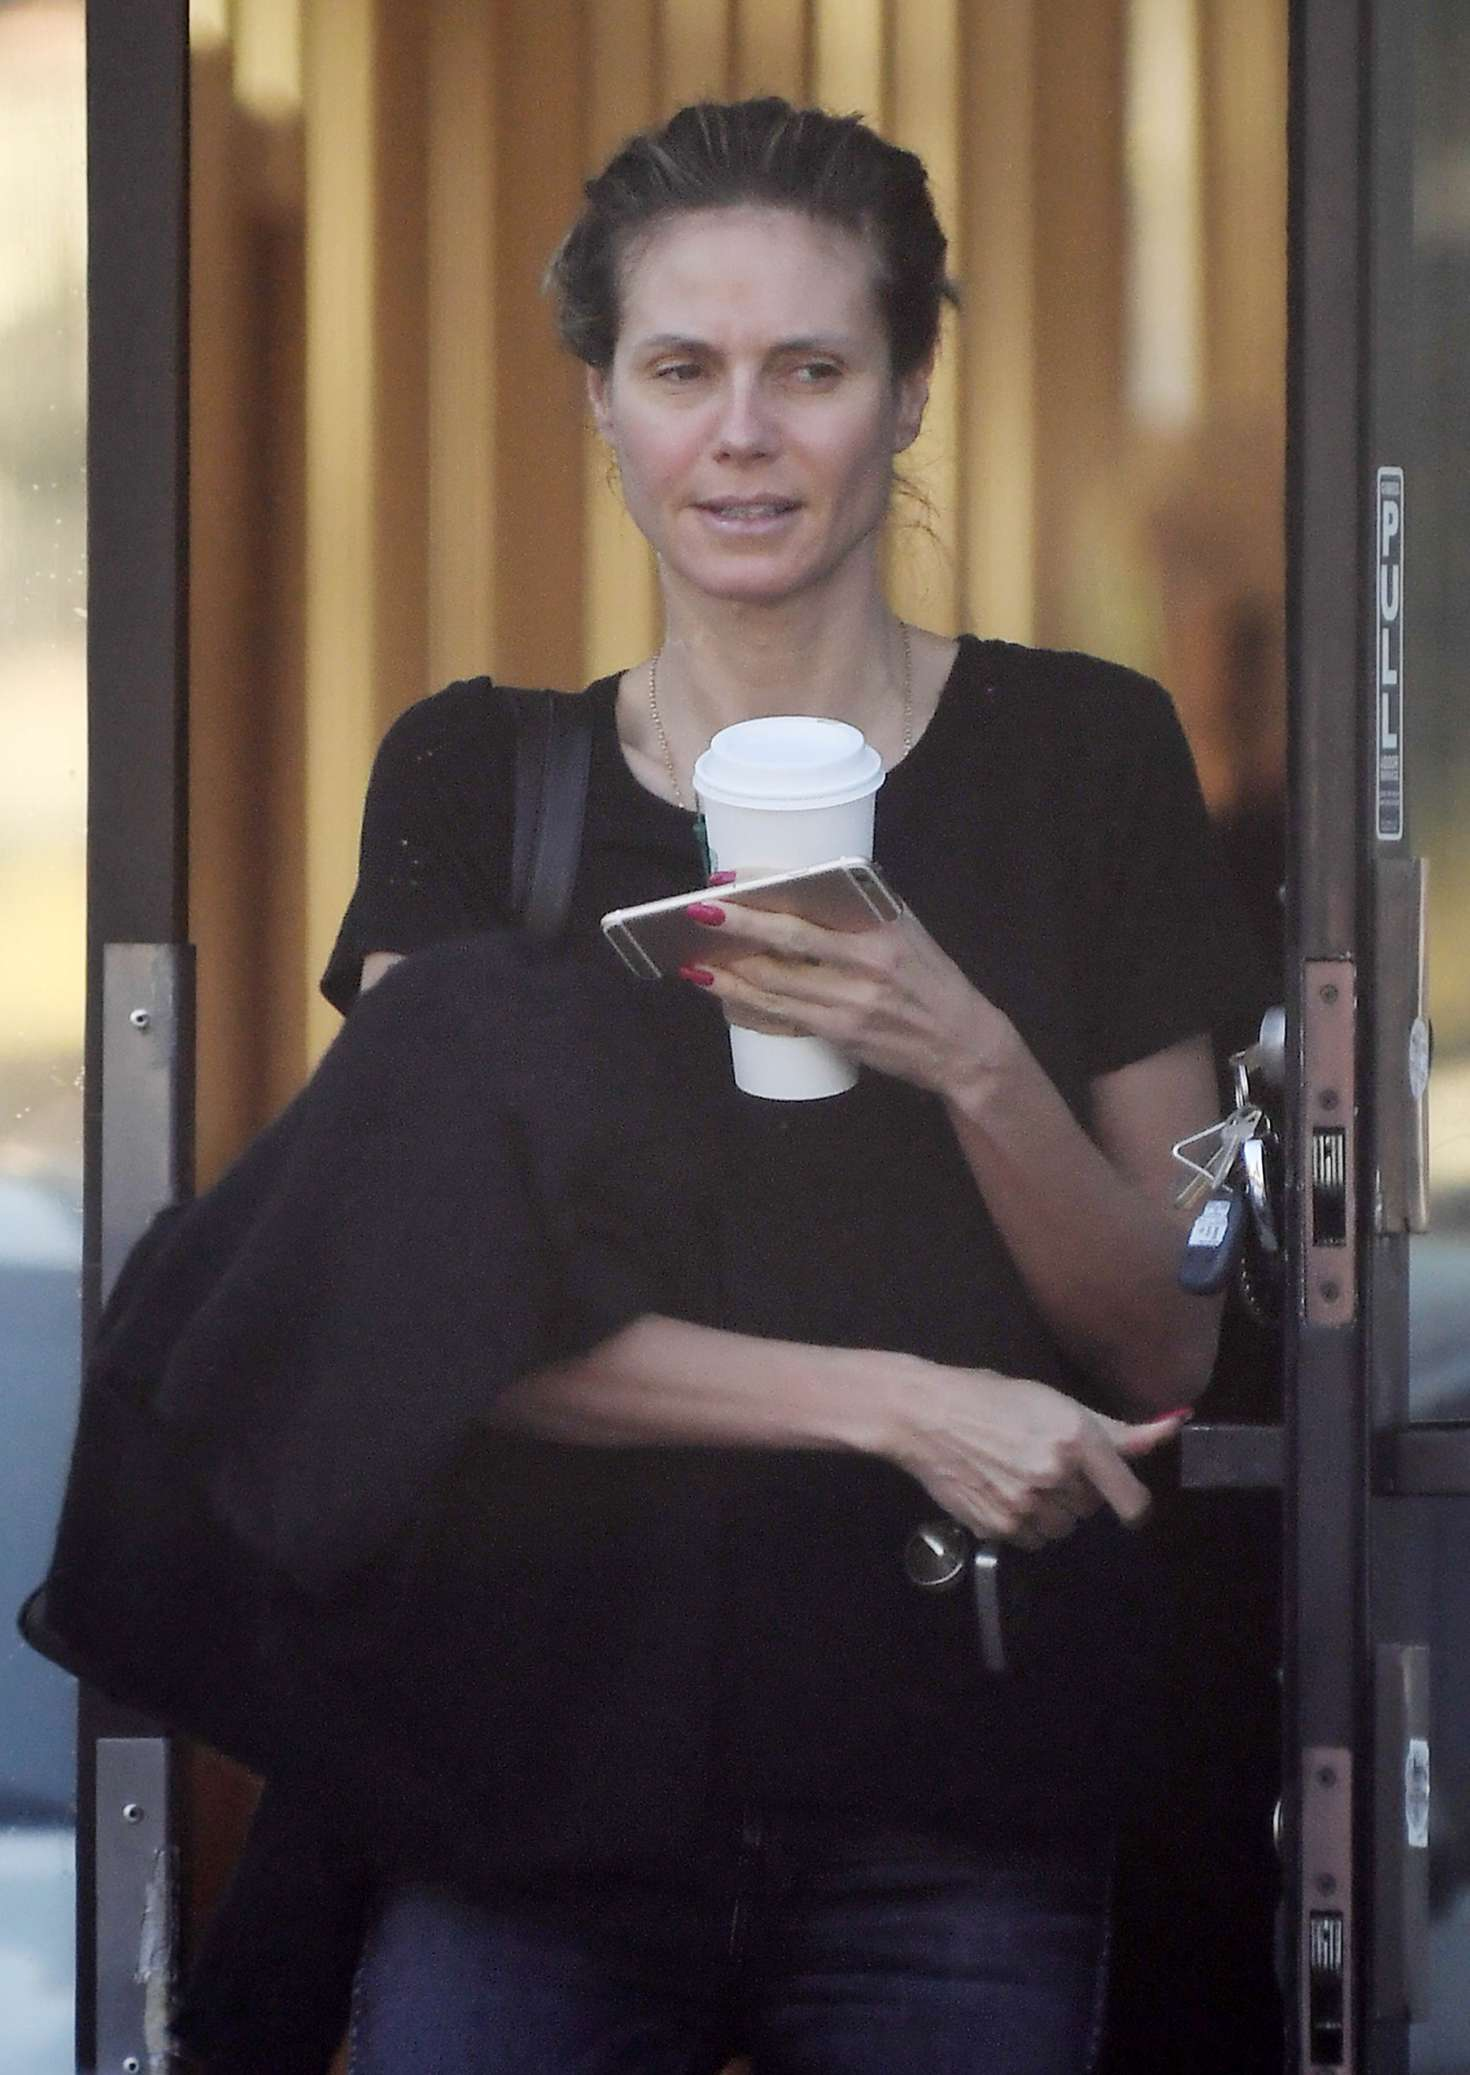 Heidi Klum treats herself to a microdermabrasion facial in Hollywood